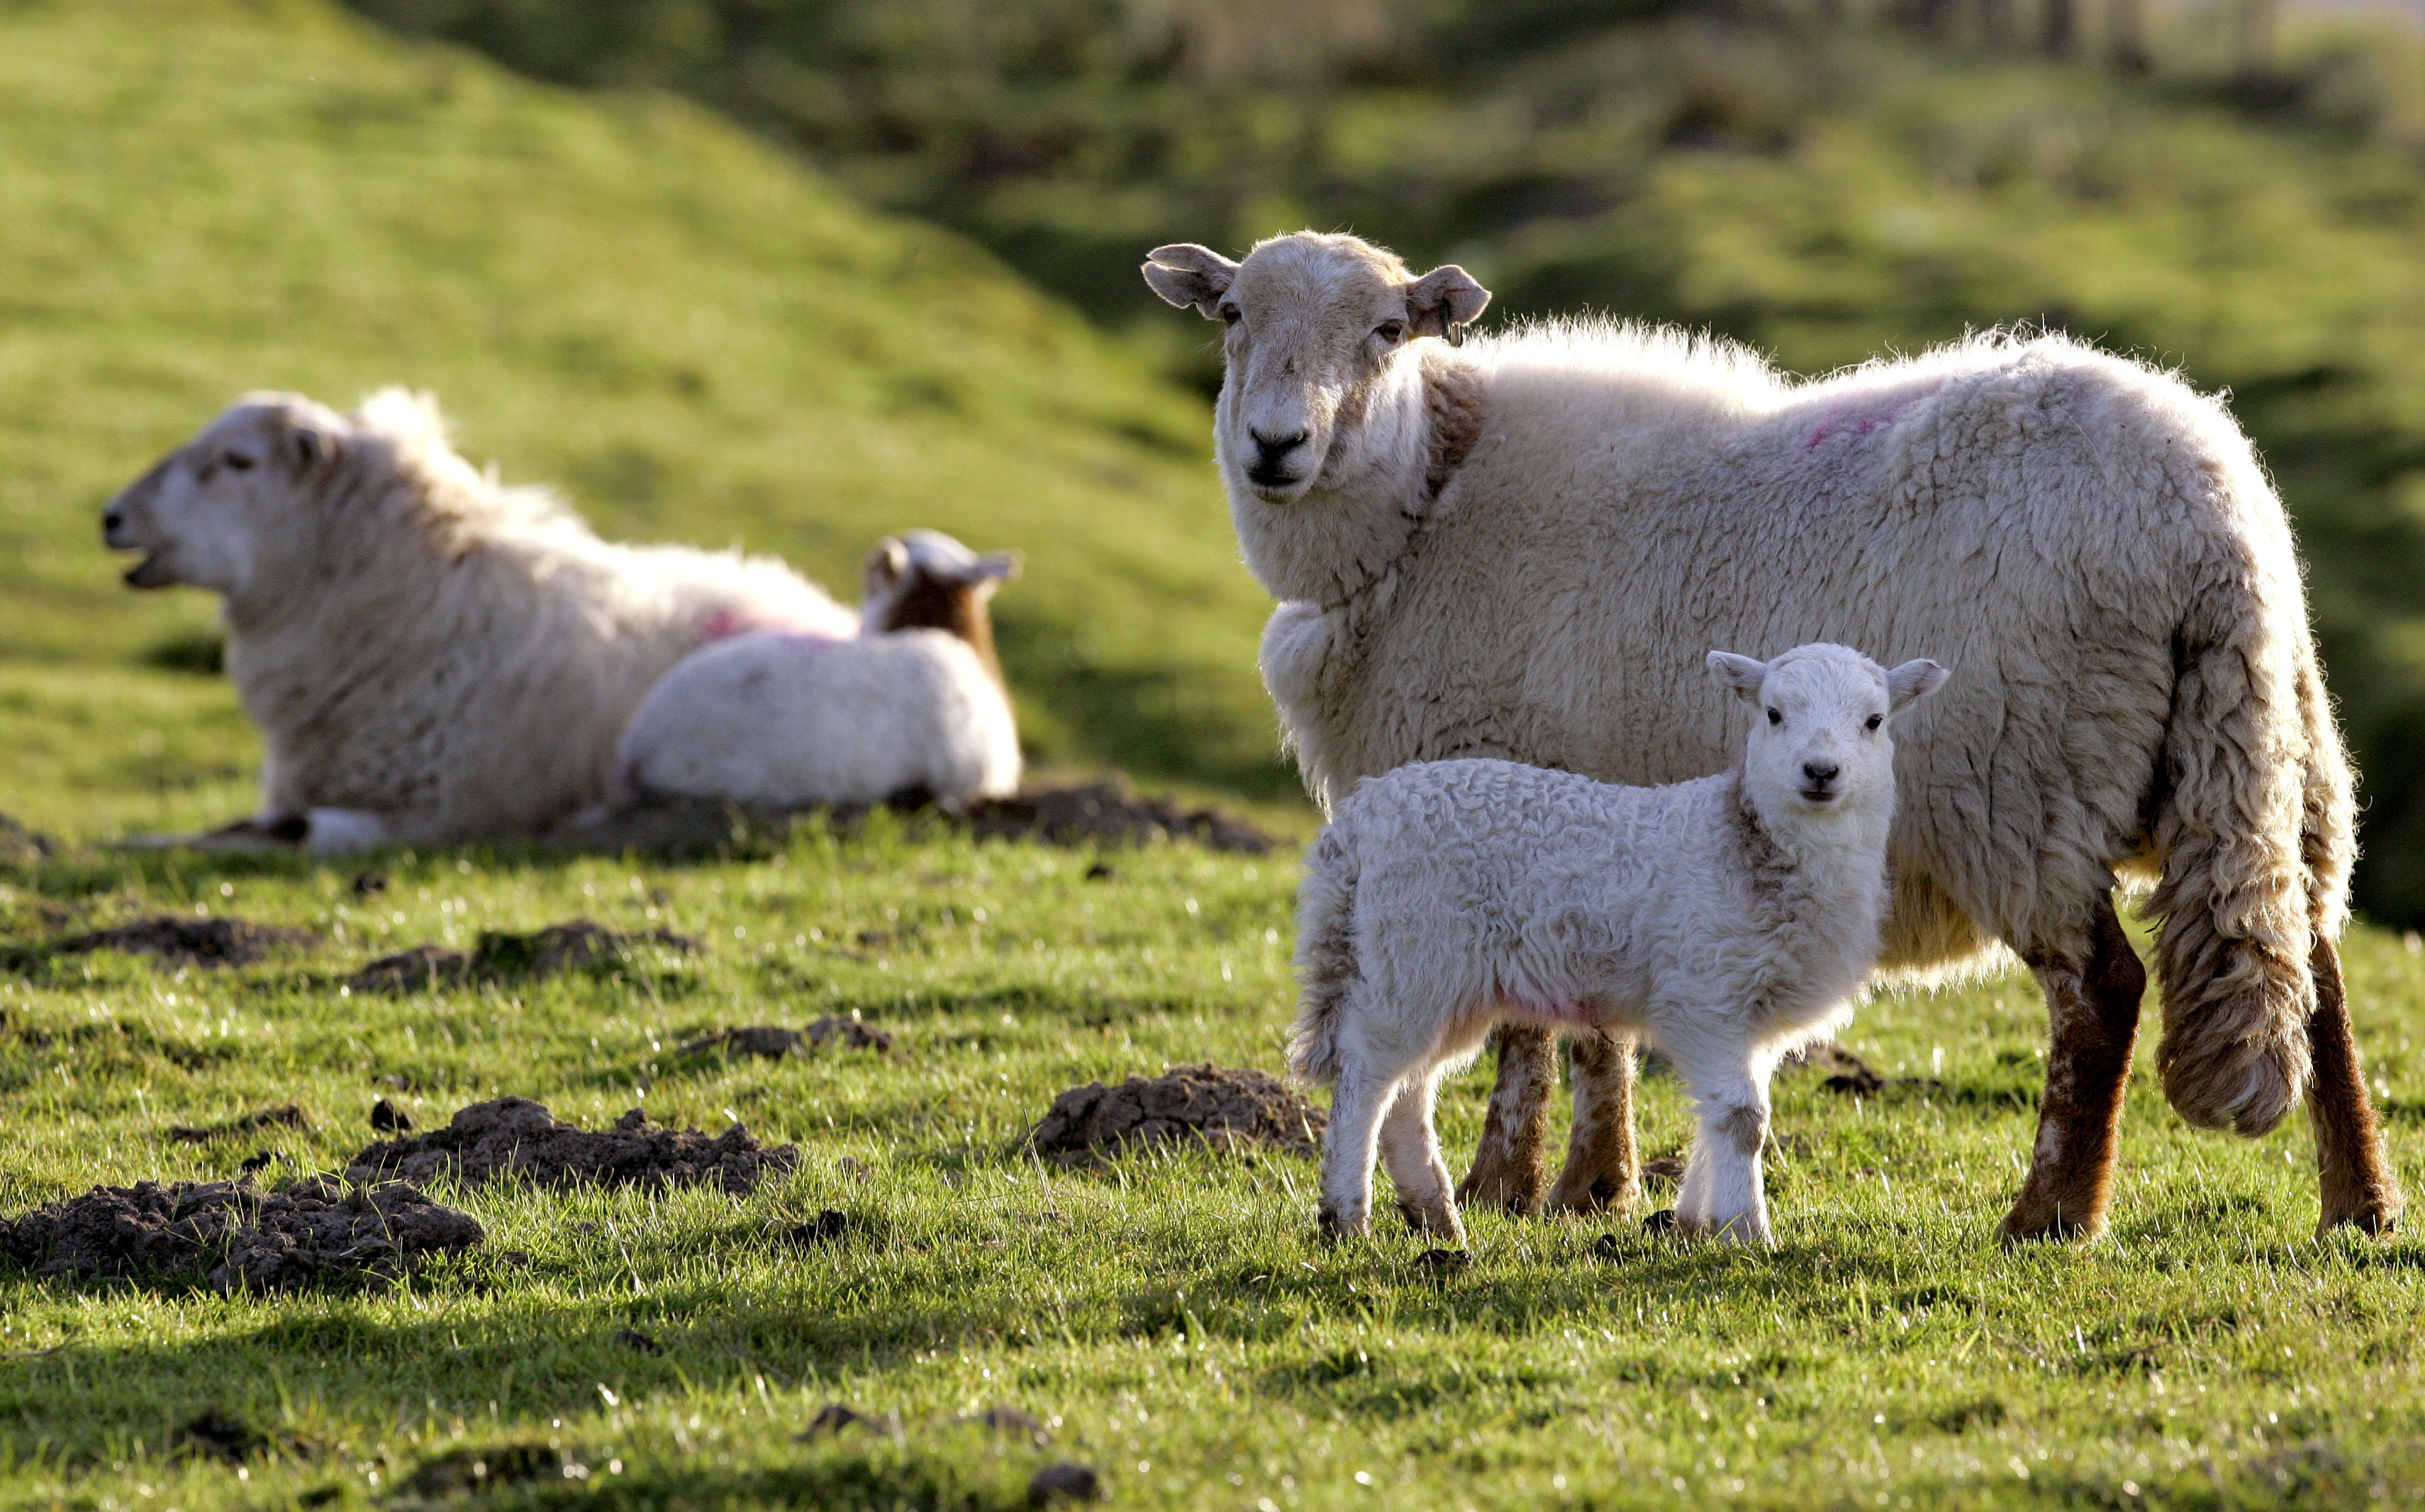 """FILE – In this Wednesday, April 23, 2008 file photo, sheep graze near the recently closed Tower Colliery coal mine near the village of Hirwaun, Wales. The Irish require at least 6,000 sheep as hosts of this year's Golden Shears World Championships. But they're more than 1,000 short with just weeks to go before an event dubbed """"the Olympics of sheep shearing."""" Organizers said Monday March 24, 2014, they need ewes, aged 12 to 14 months, to ensure that all competitors are supplied similarly shaped sheep. (AP Photo/Kirsty Wigglesworth, File)"""